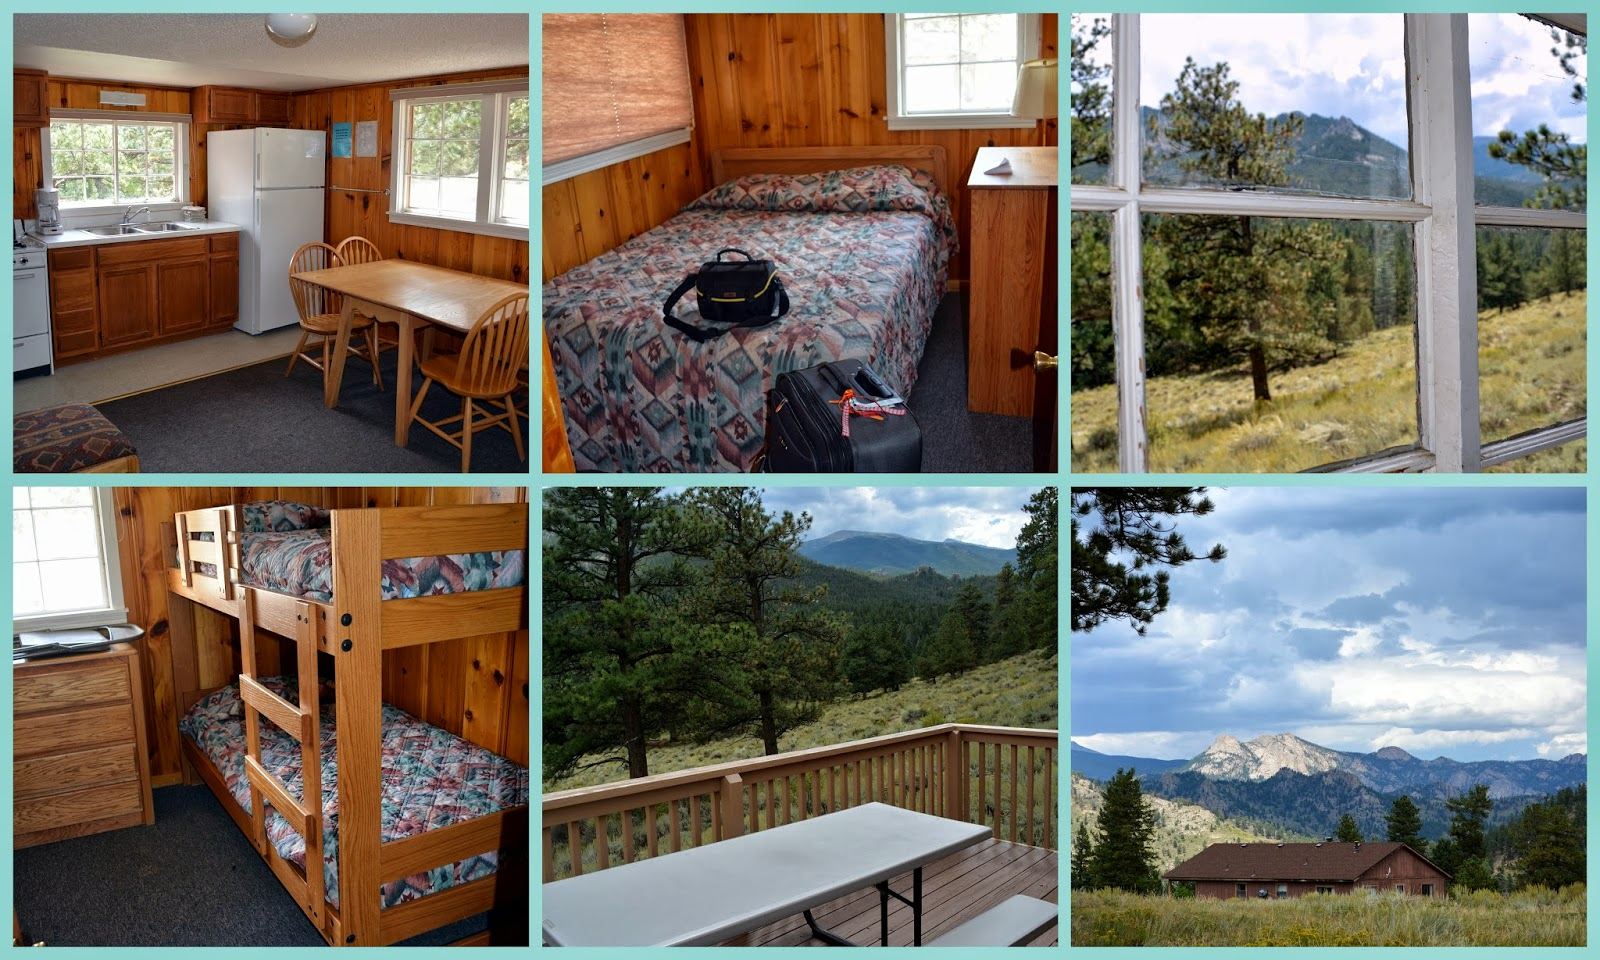 Cabins Have Gas Or Electric Heat, Fully Equipped Kitchens With A Stove With  An Oven A Refrigerator And A Microwave (except The Two Bedroom Basic  Cabin), ...